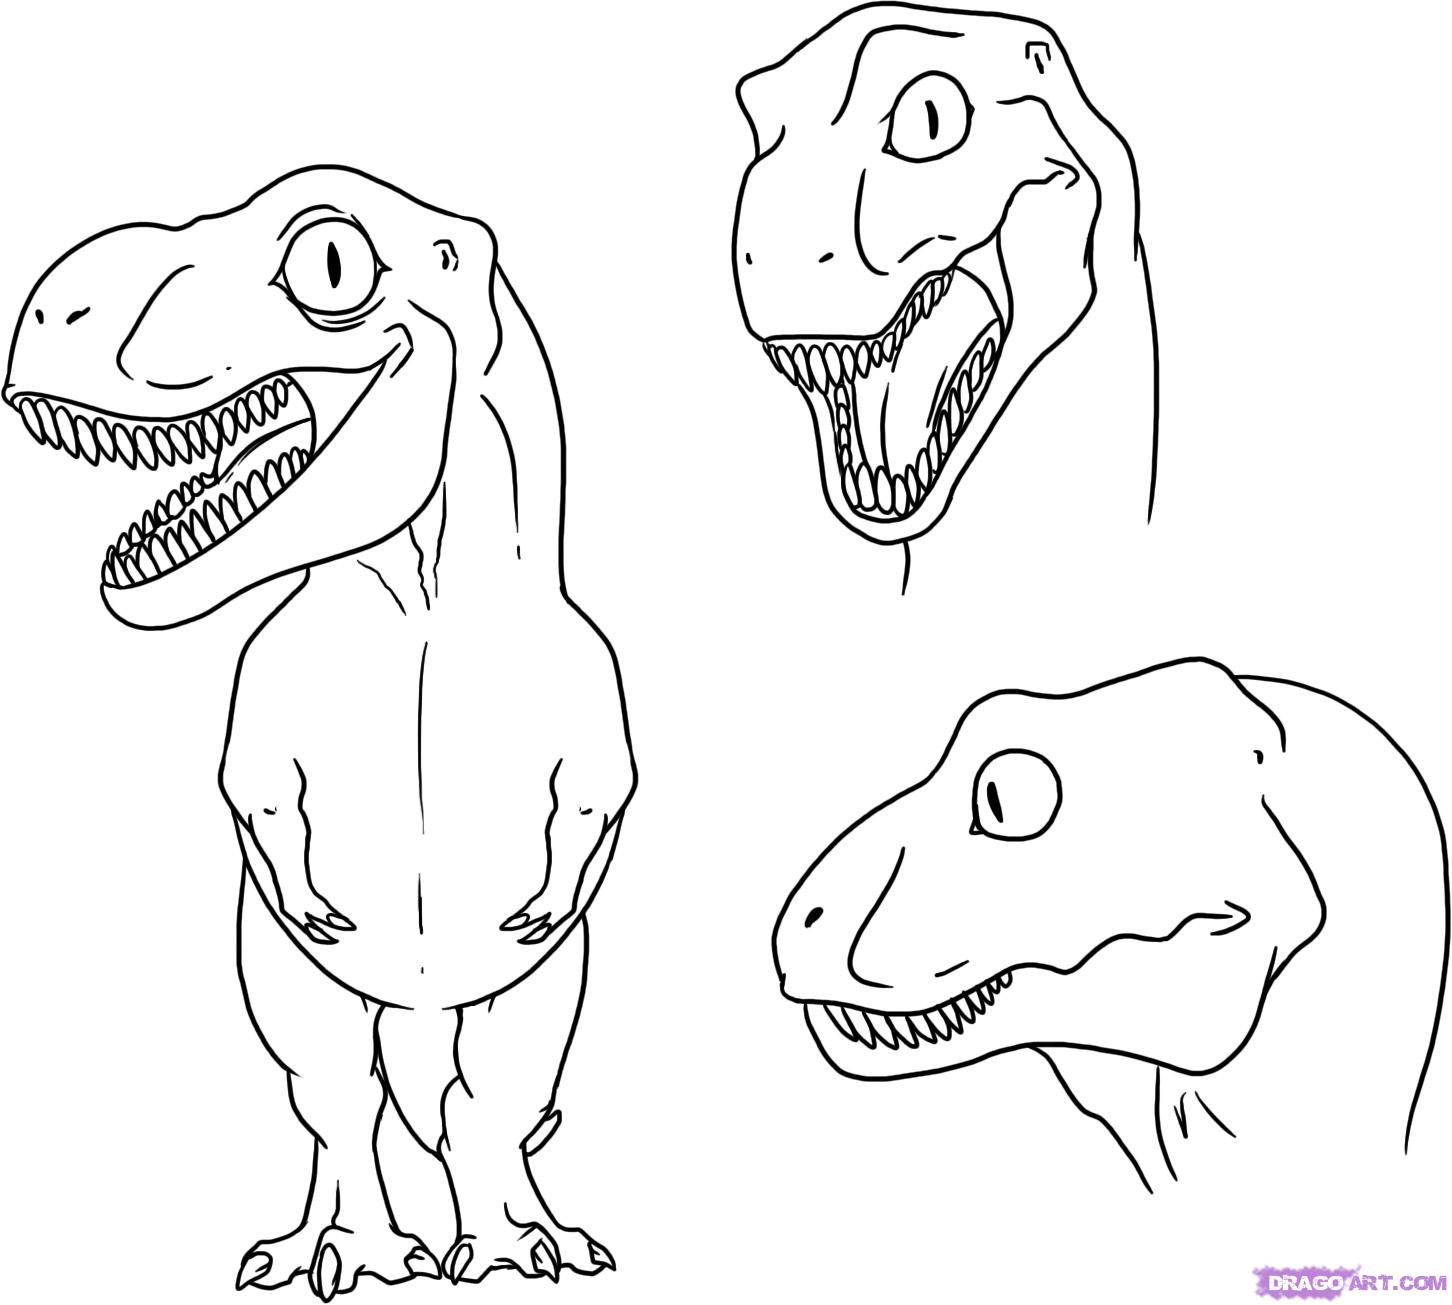 1452x1305 Drawing Dinosaurs Step By Step 5. How To Draw A Baby Dinosaur